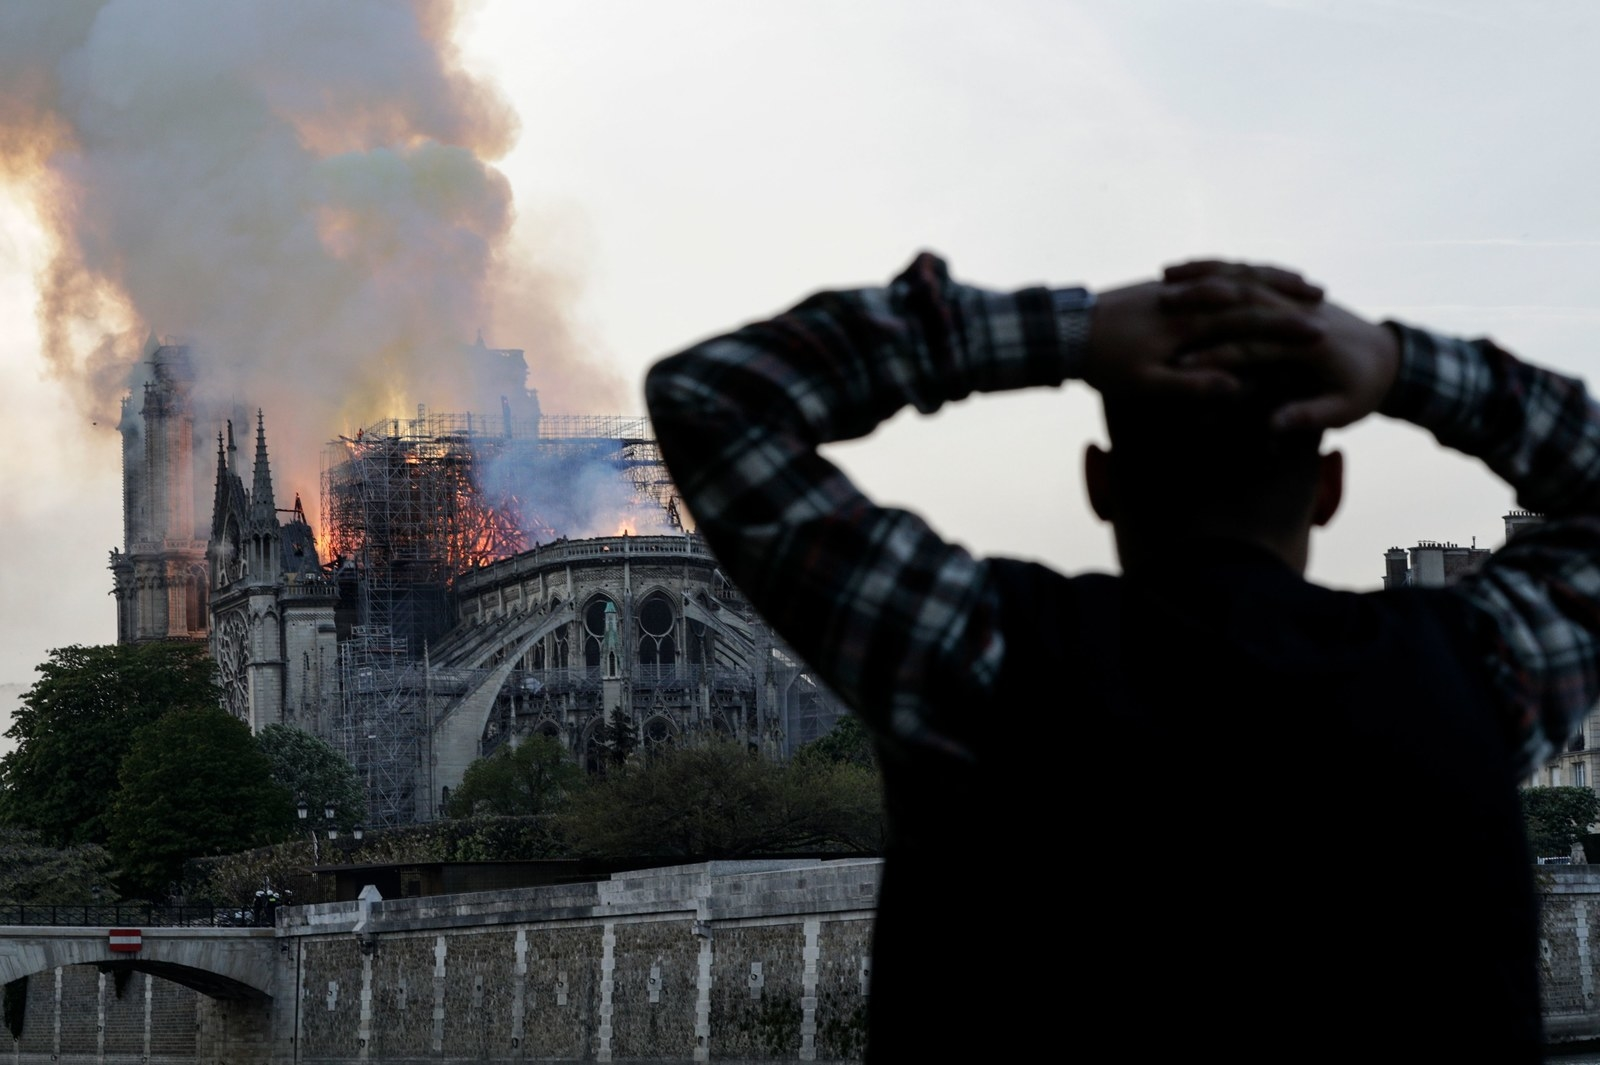 A man watches the landmark Notre-Dame Cathedral, engulfed in flames, in central Paris on April 15, 2019.